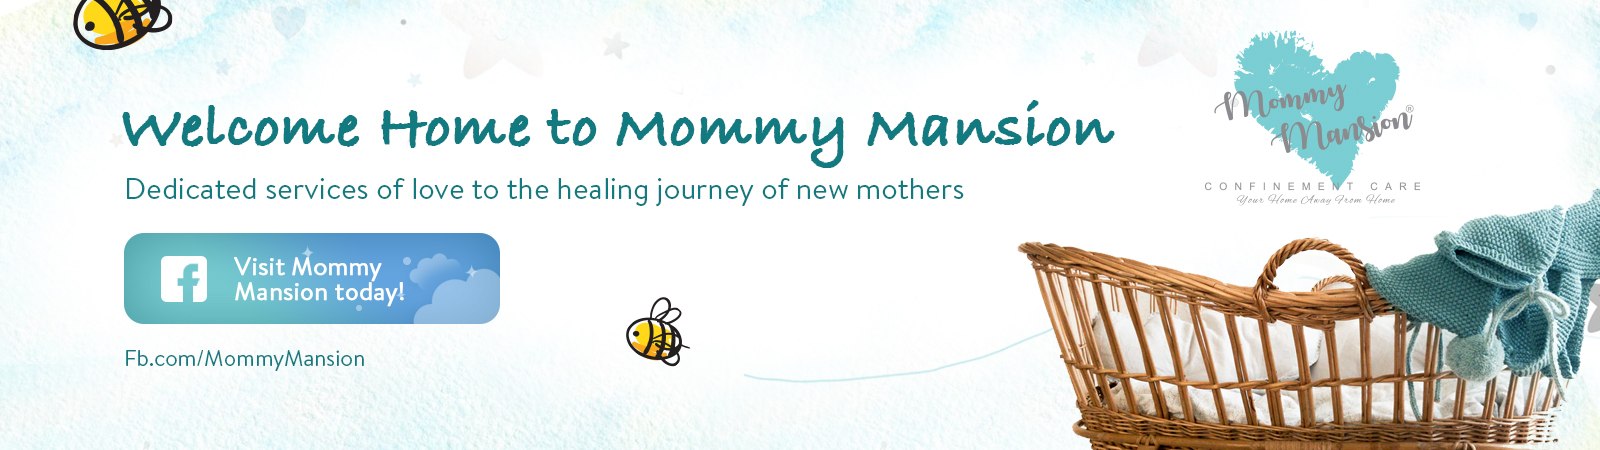 Mommy Mansion Confinement Centre: Where a New Mom's Wishes Come True